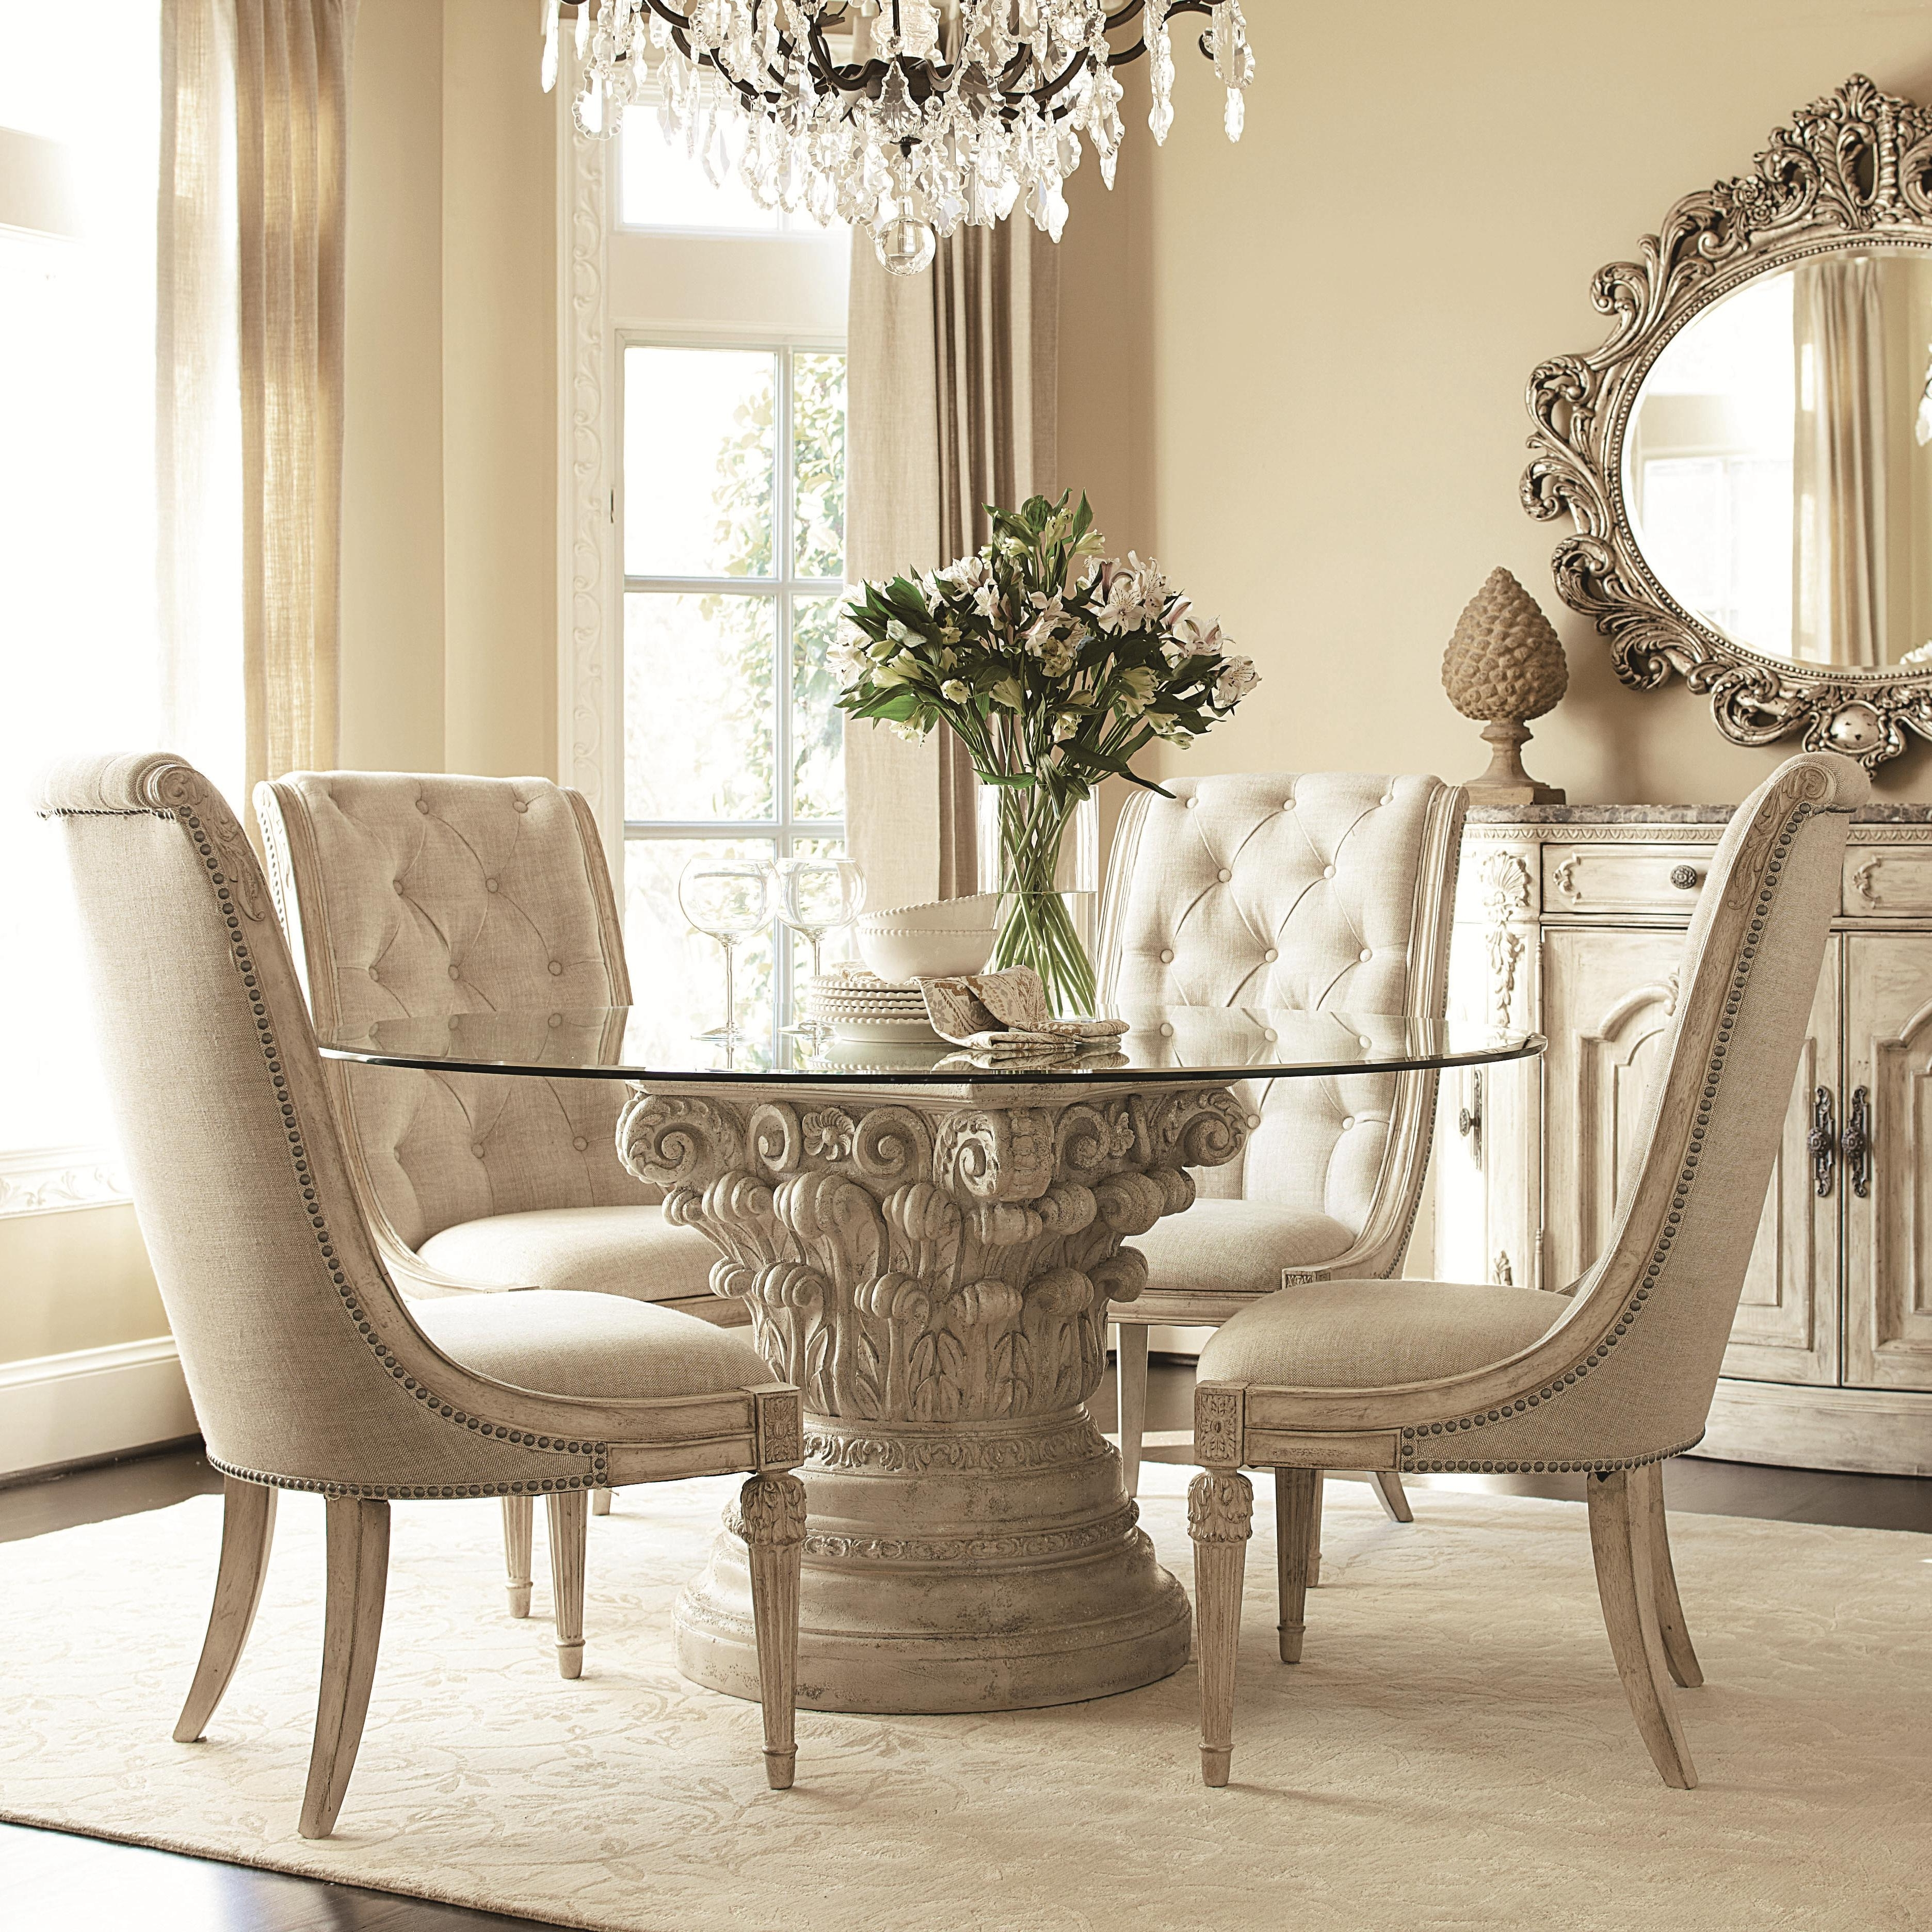 American Drew Jessica Mcclintock Home – The Boutique Collection 5 Intended For Current Jaxon 5 Piece Round Dining Sets With Upholstered Chairs (Gallery 3 of 25)